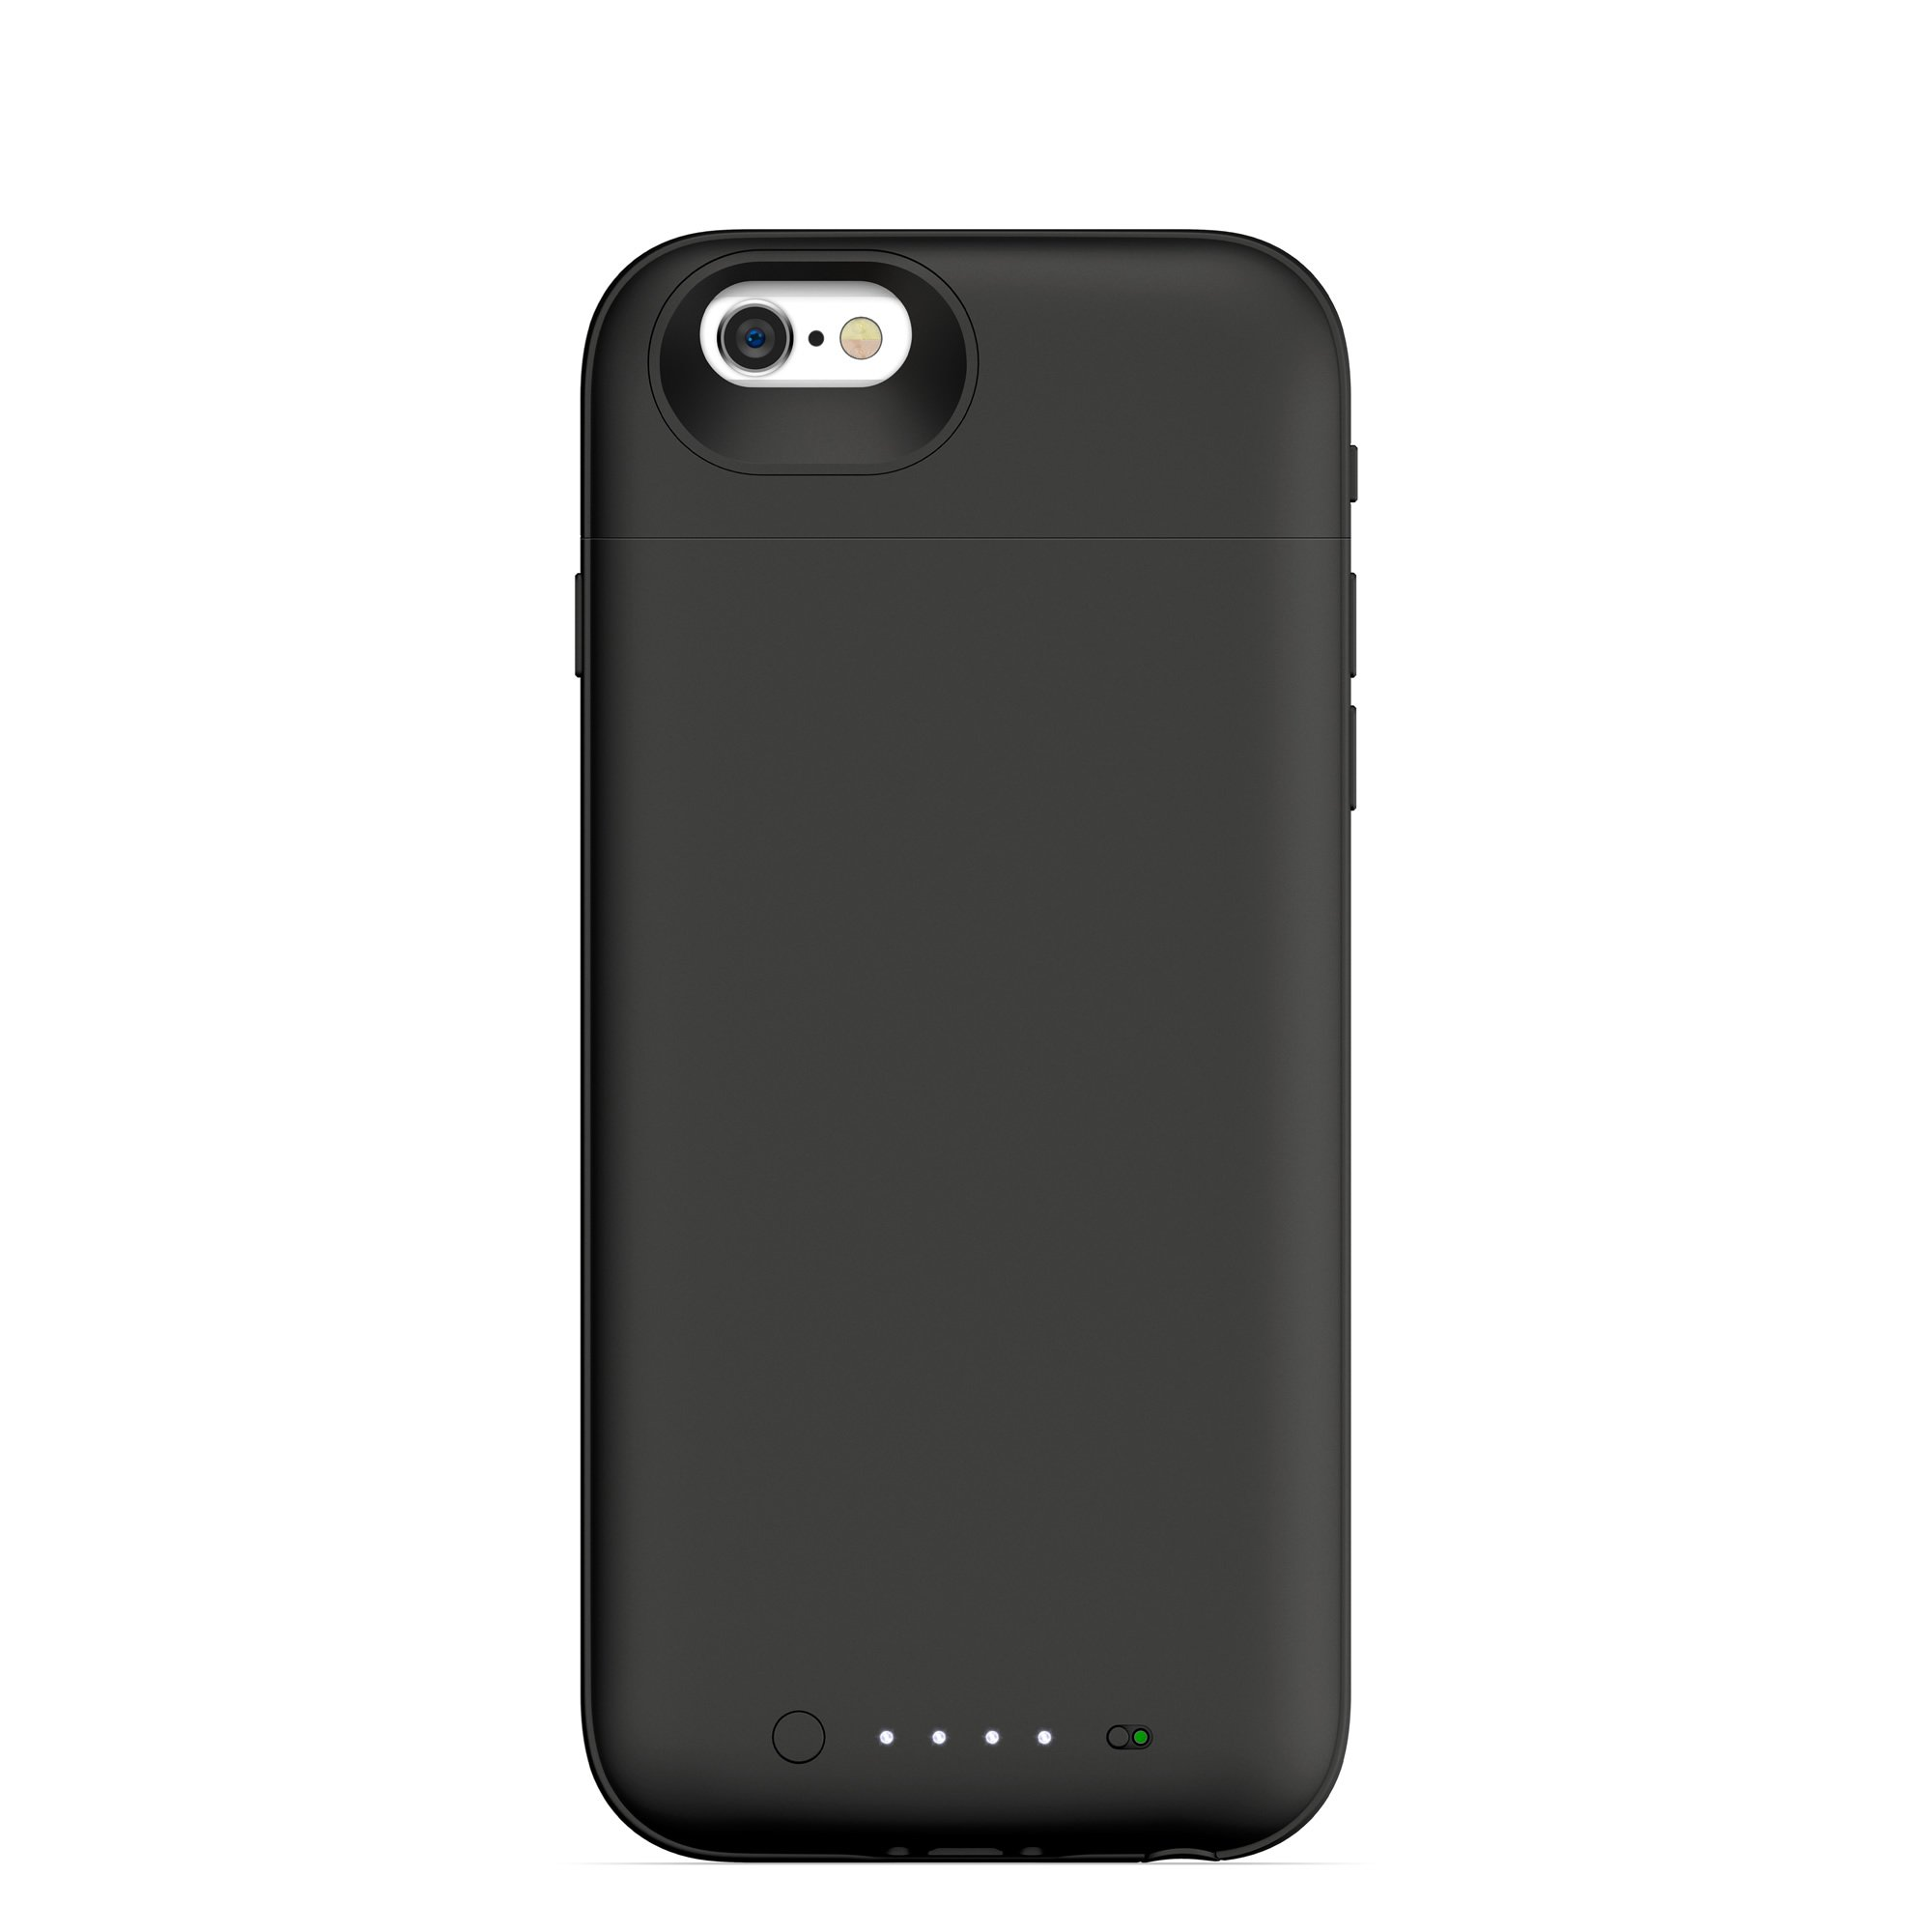 mophie juice pack air - Slim Protective Mobile Battery Pack Case for iPhone 6/6s - Black by mophie (Image #11)